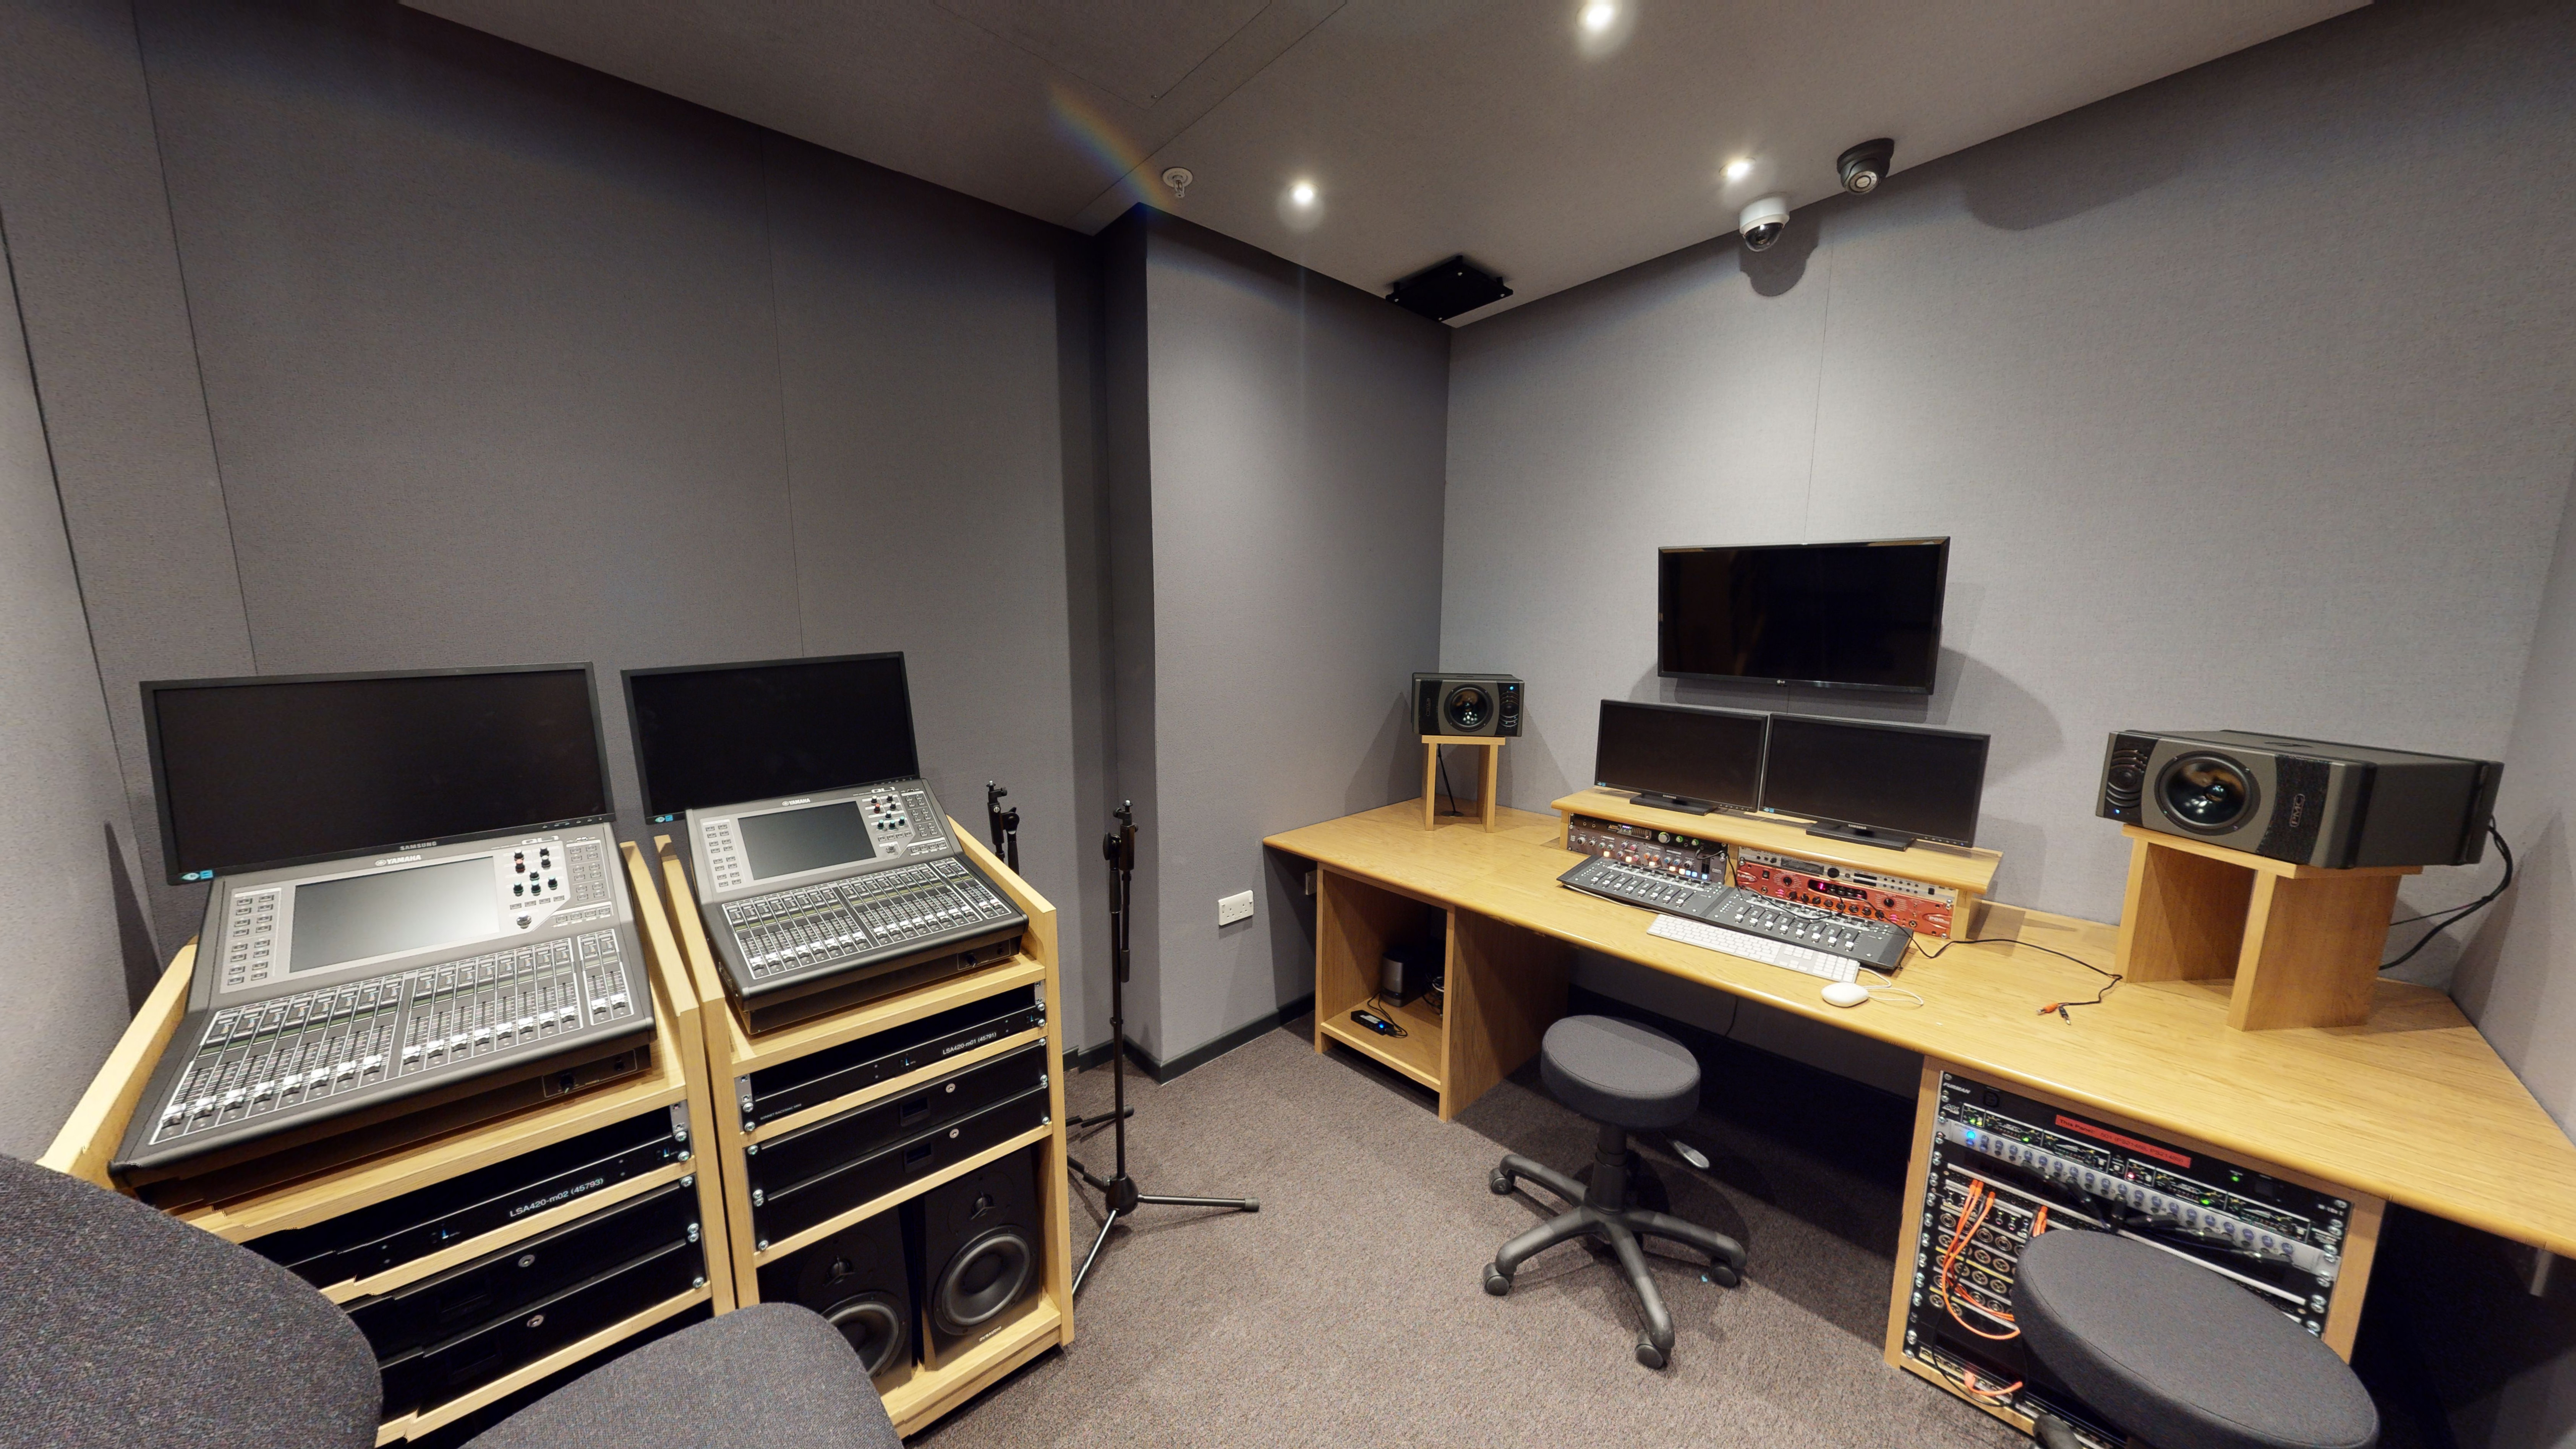 Room with a mix of production consoles, computers and speakers set on wooden desks.